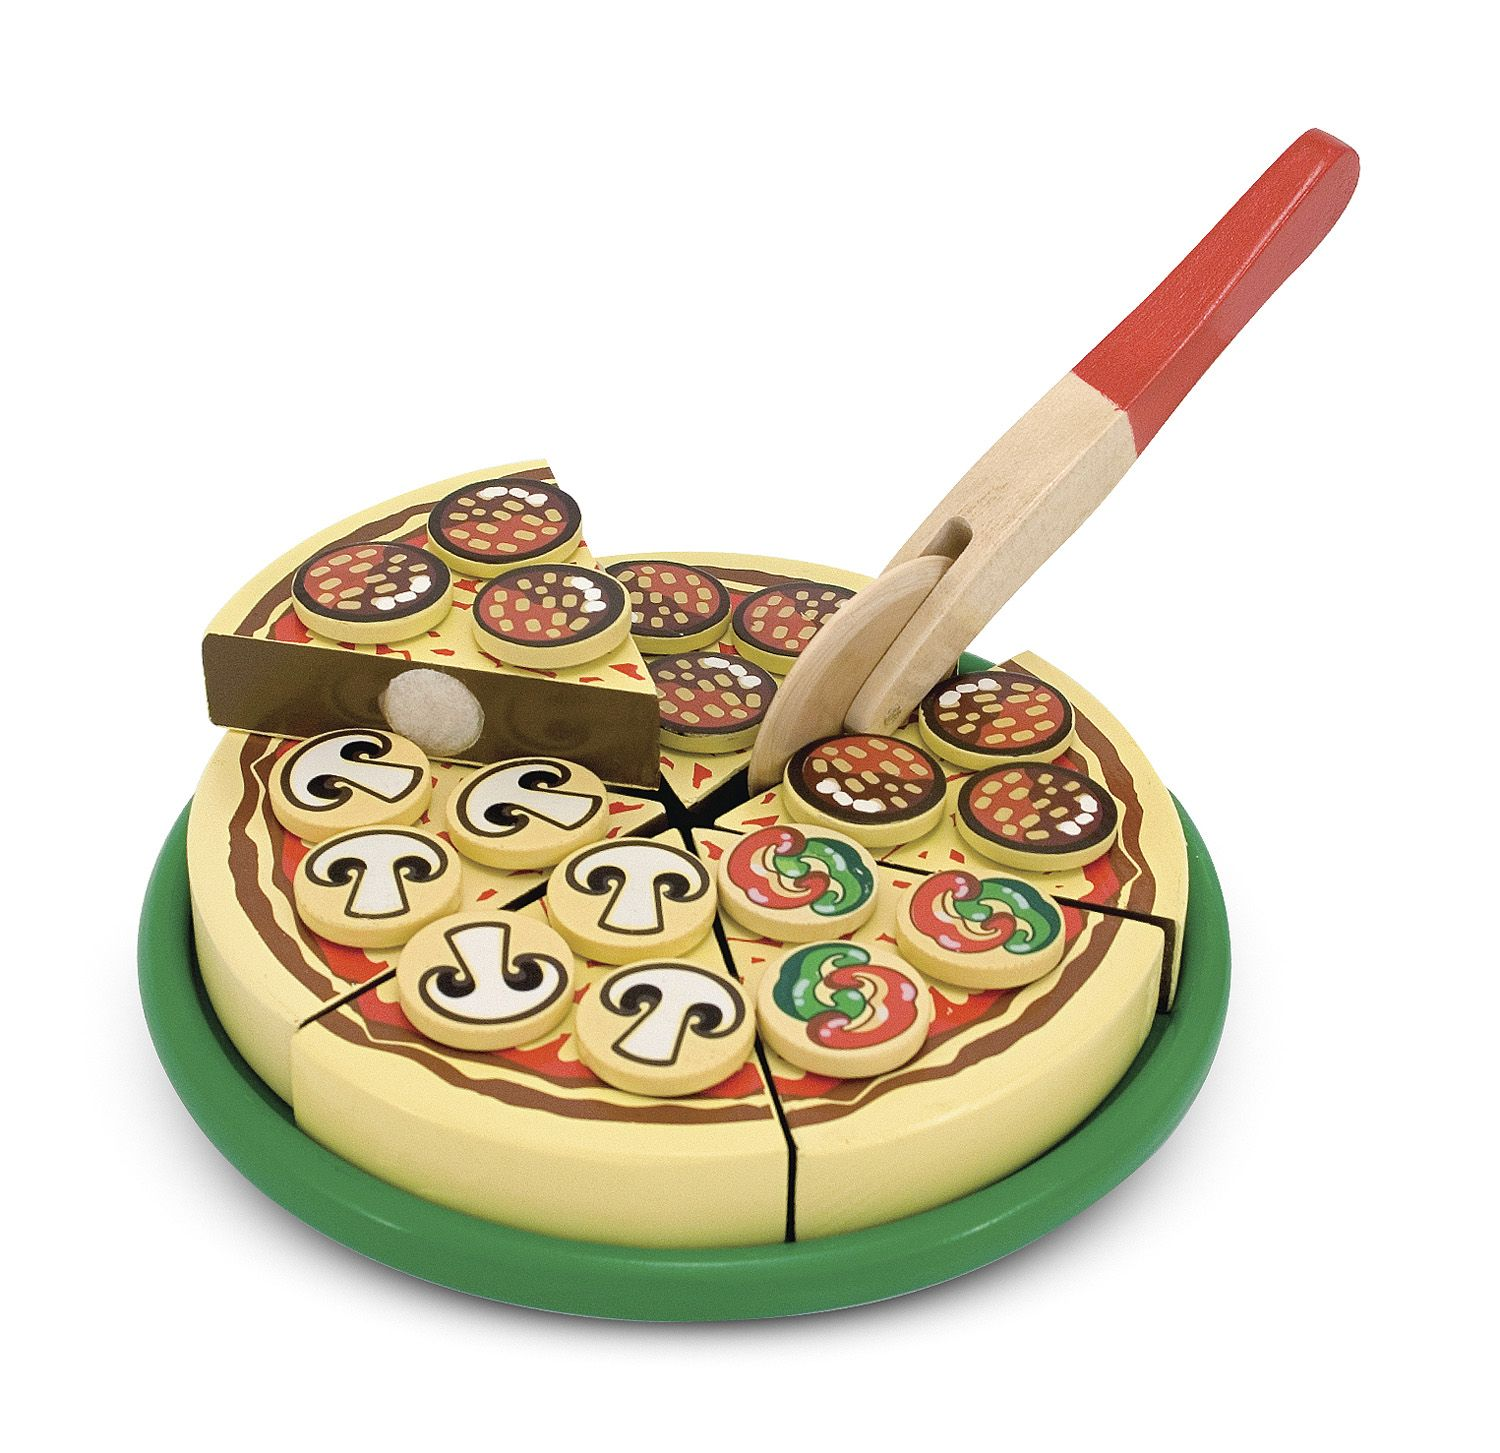 Pizza Slice and Pizza Cutter Charm for Food or Party Themed Jewelry or Gifts